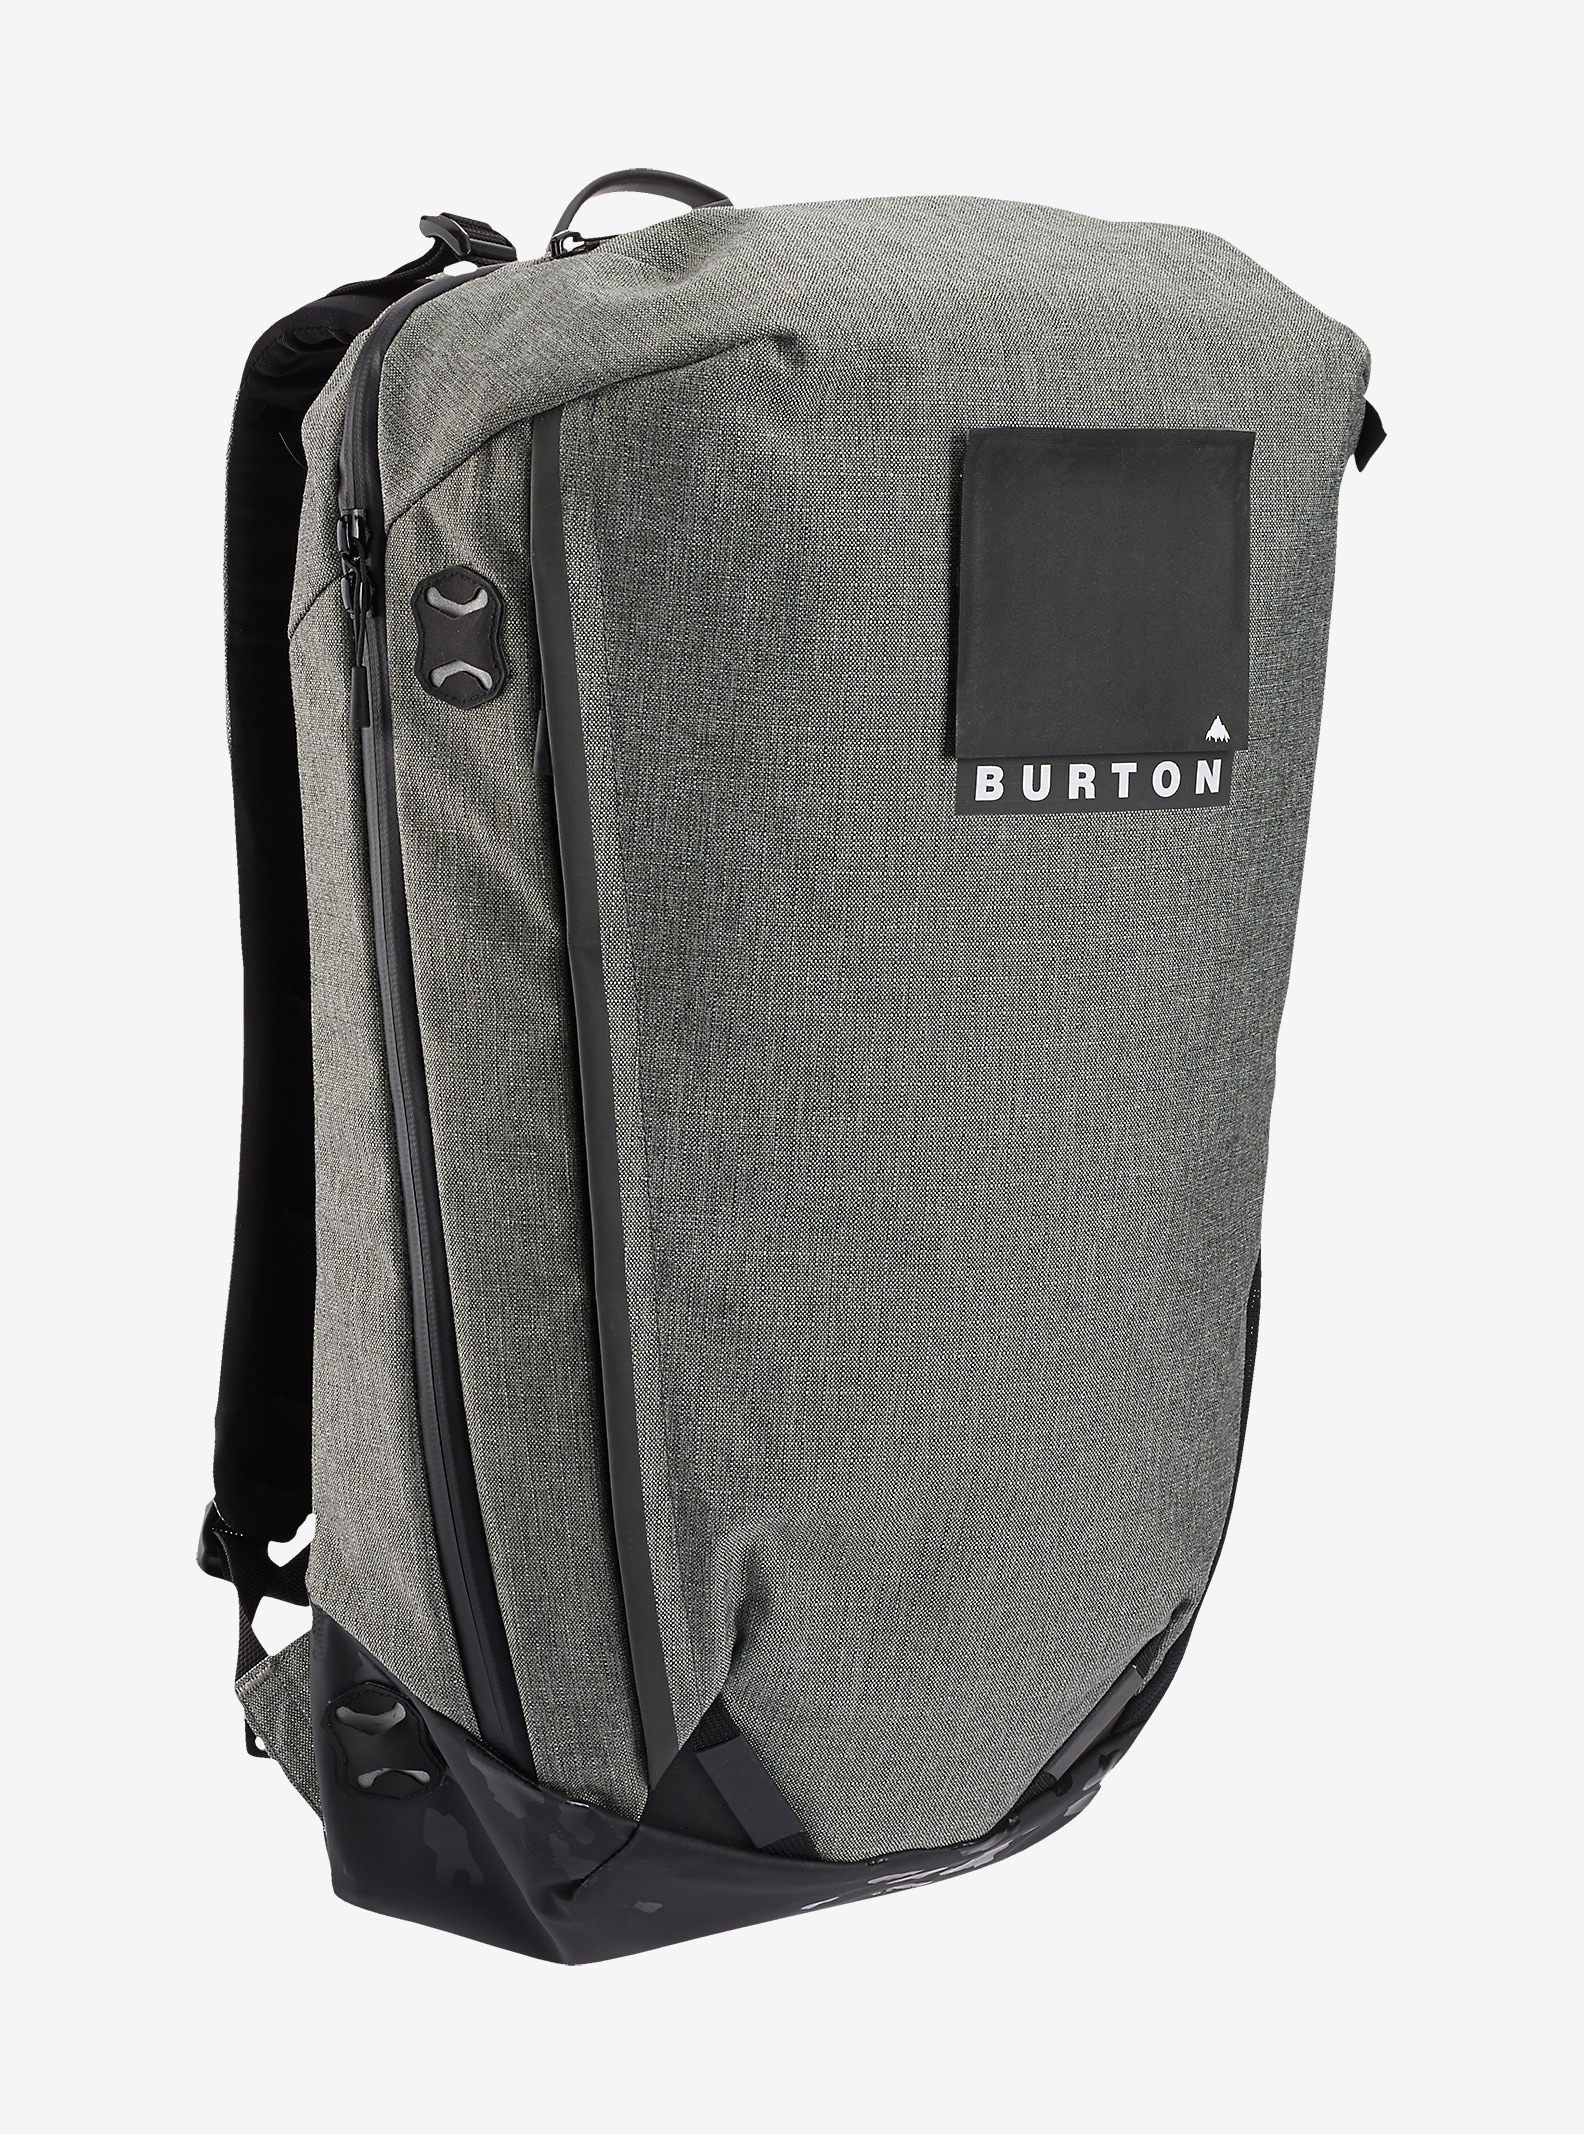 Burton Gorge Pack shown in Pelican Grey Cordura®